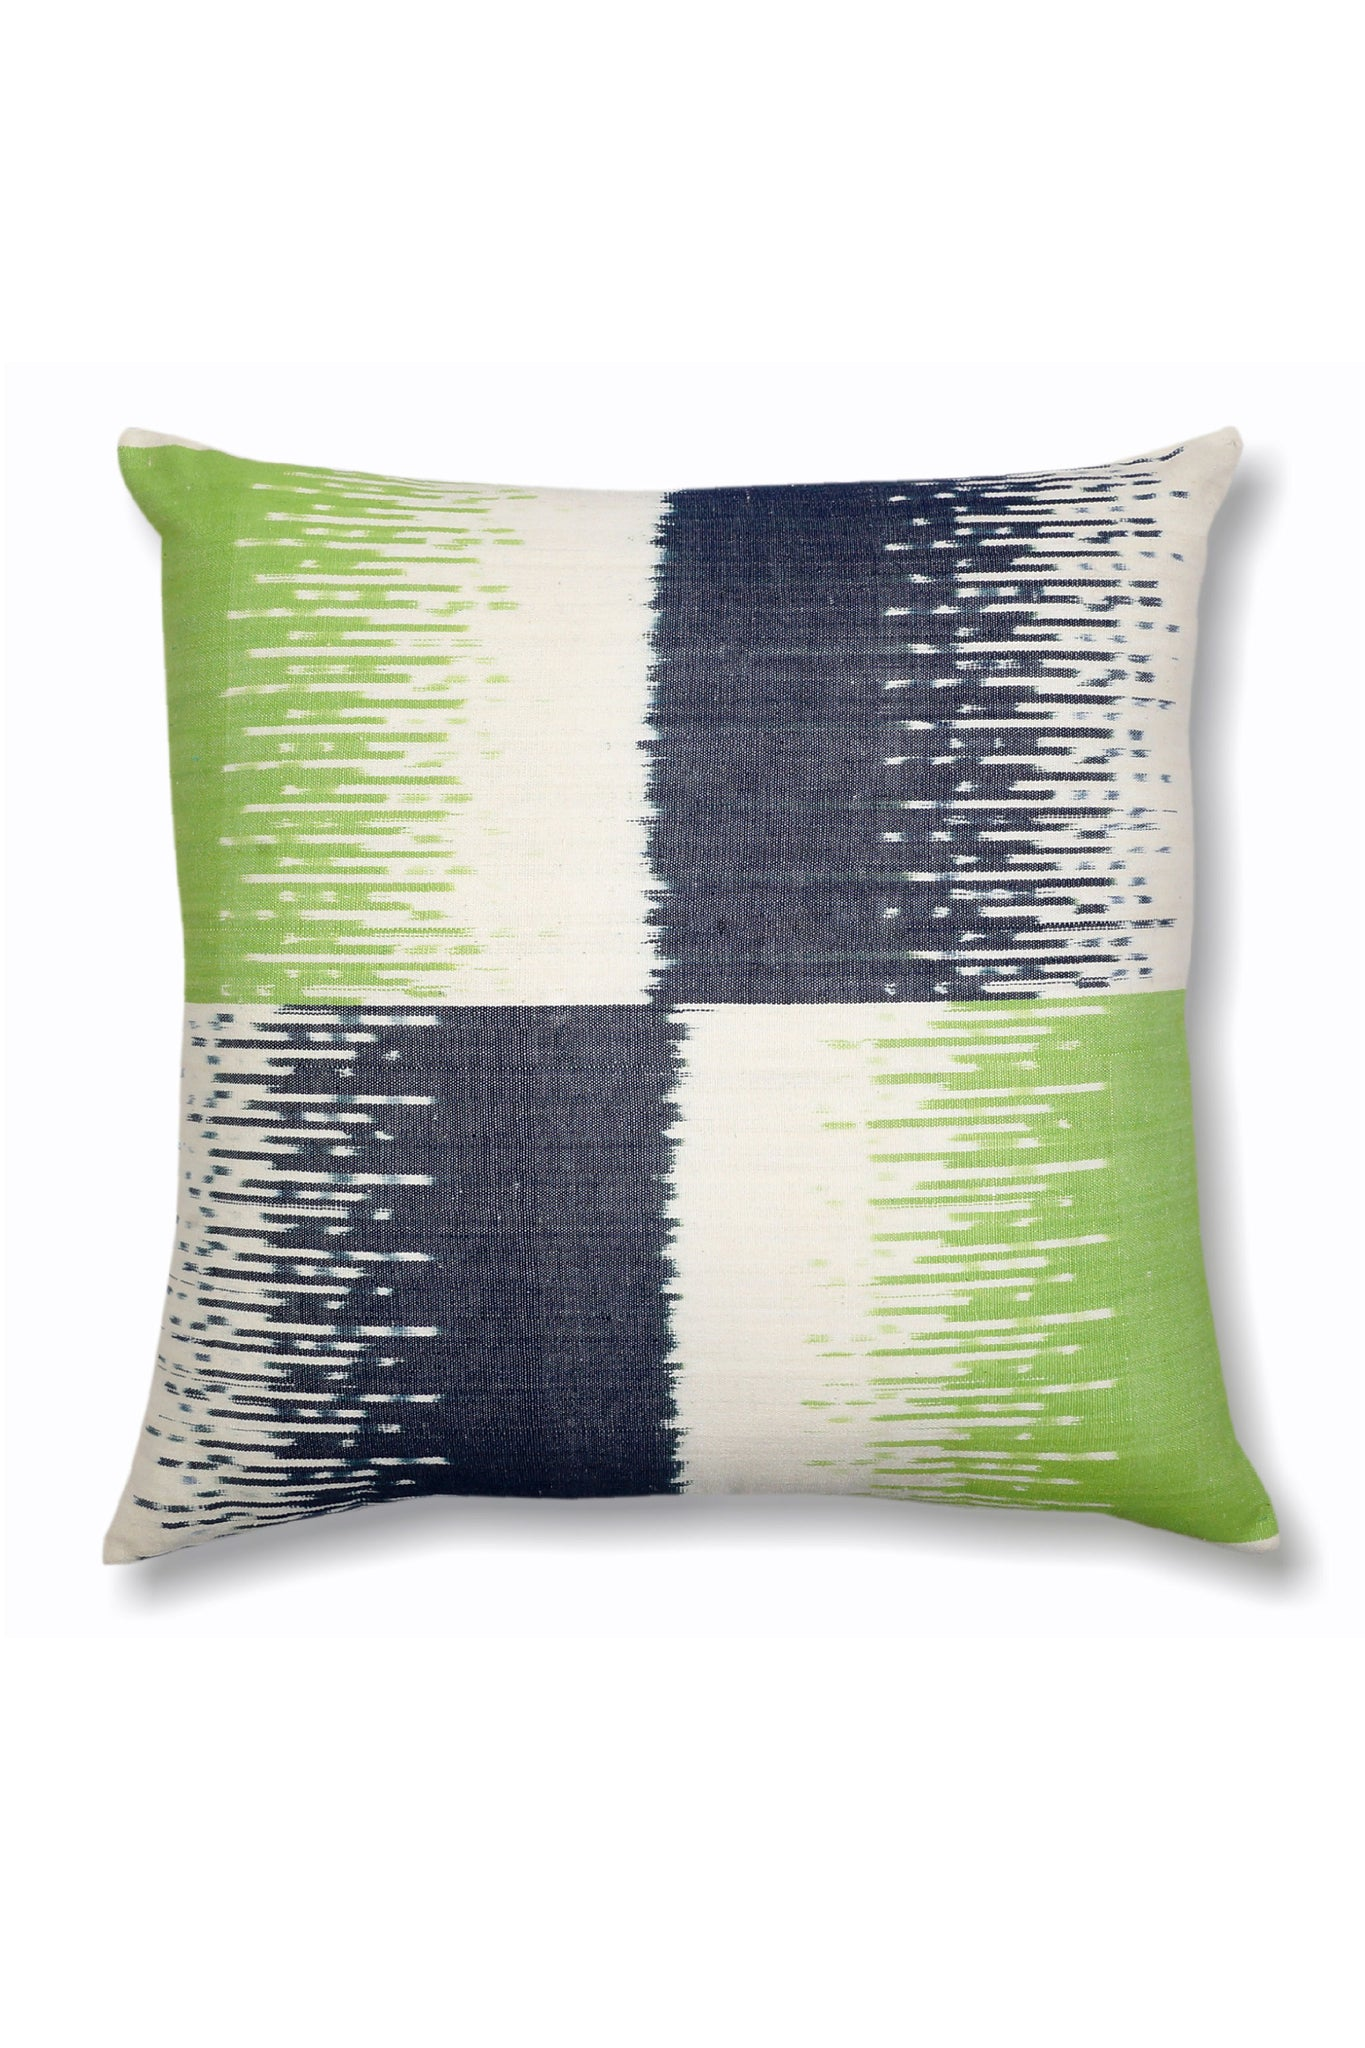 Ereena Eri Silk Shibumi pillow cover-EXHCK17-F